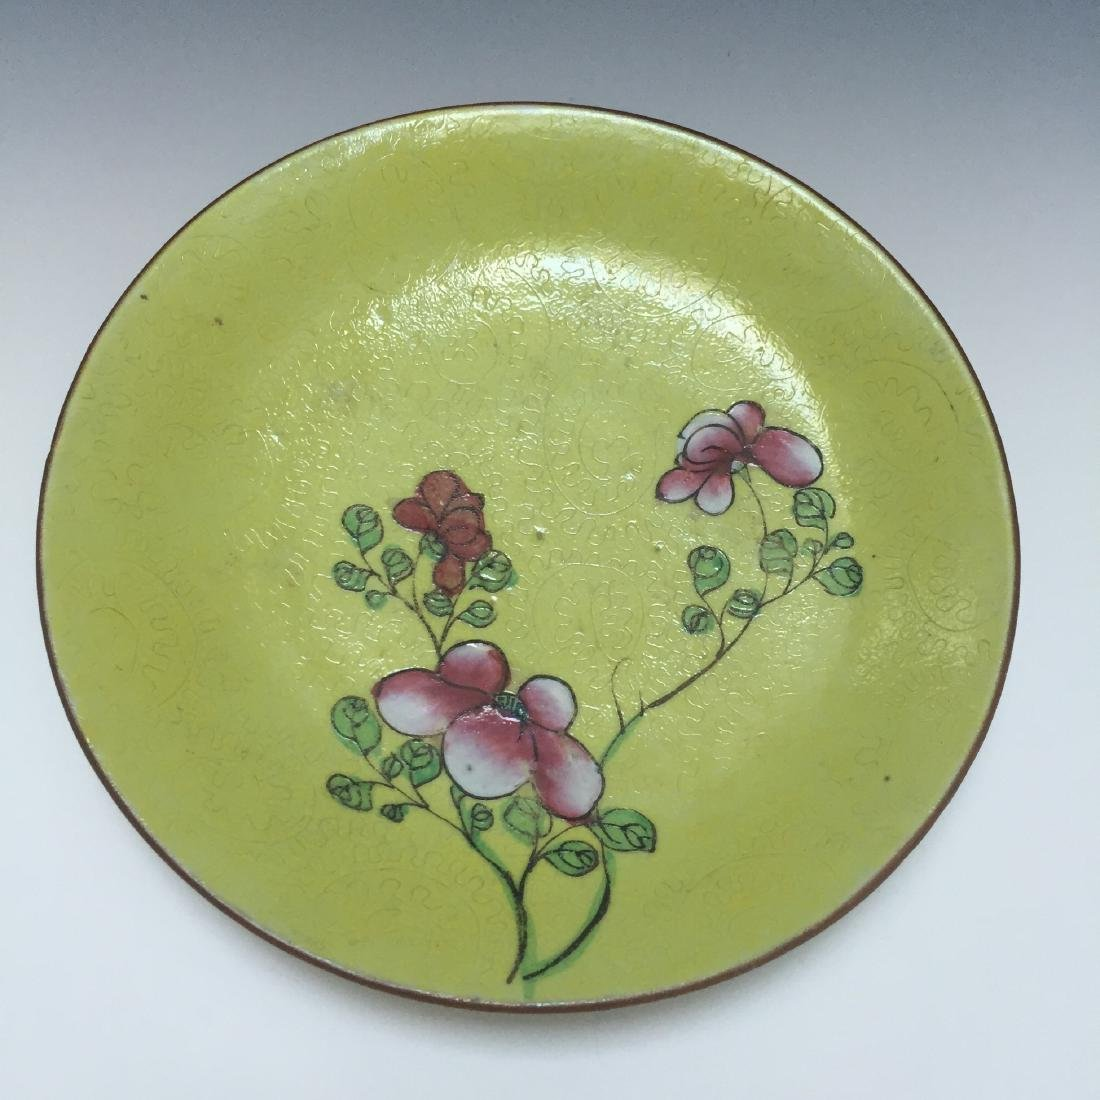 A BUEATIFUL CHINESE ANTIQUE FAMILLE ROSE DISH, 19TH CT